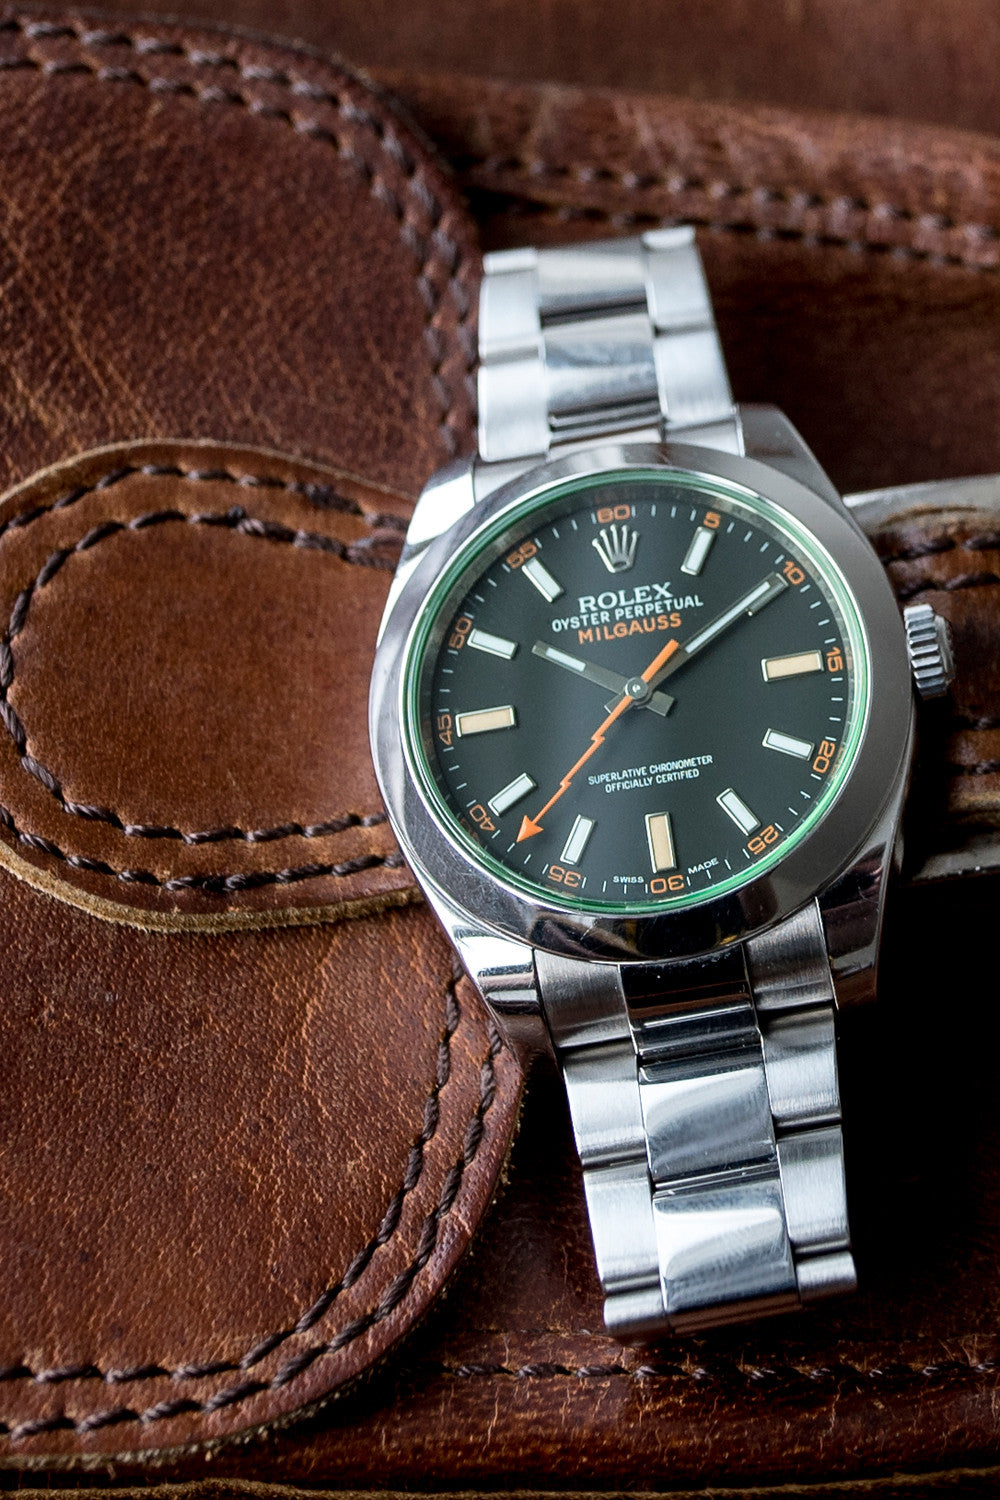 ROLEX Milgauss 40mm 116400GV Automatic Watch